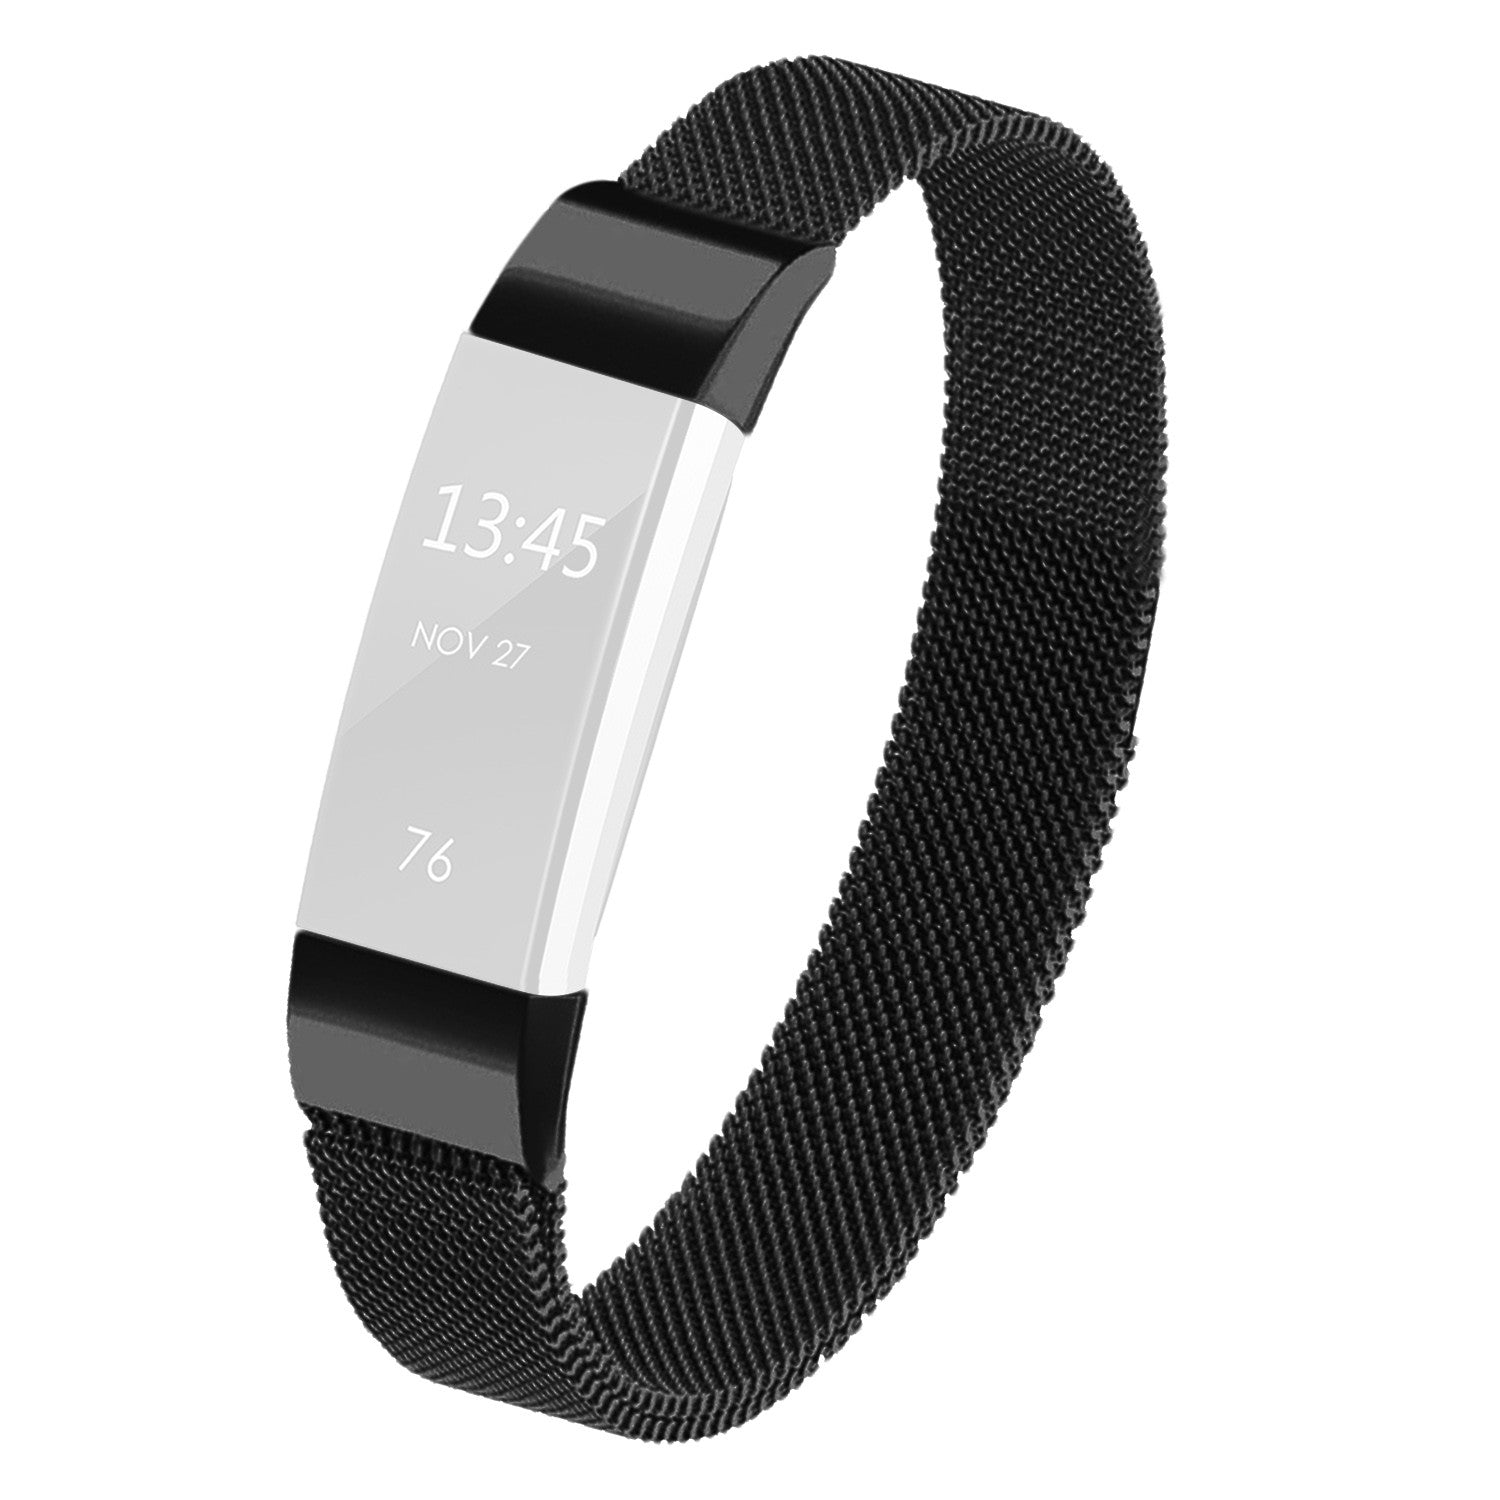 Satkago Stainless Steel Metal Bracelet with Magnet Clasp Replacement Bands for Fitbit Alta,Black